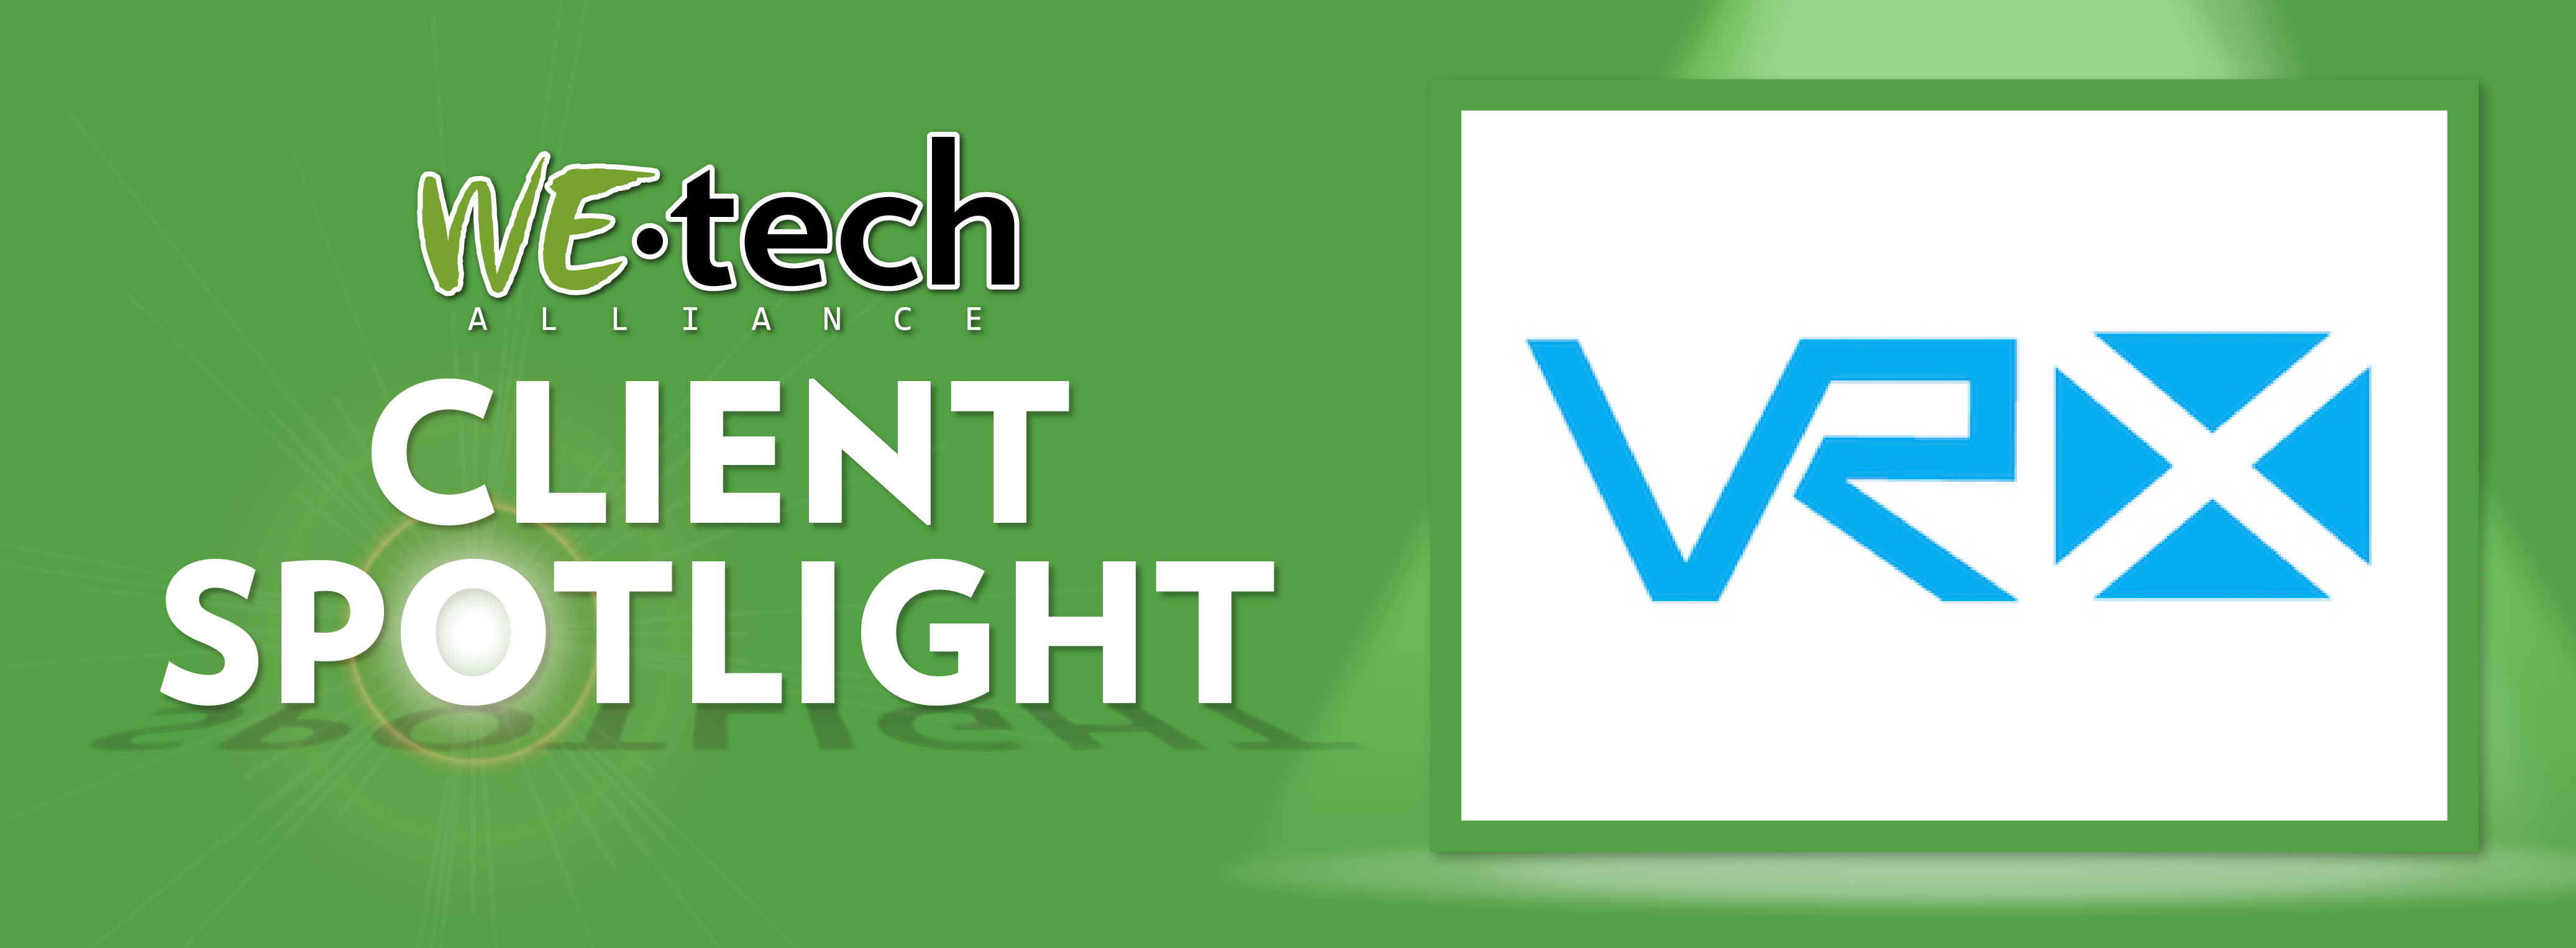 new CLIENT spotlight VRX-01